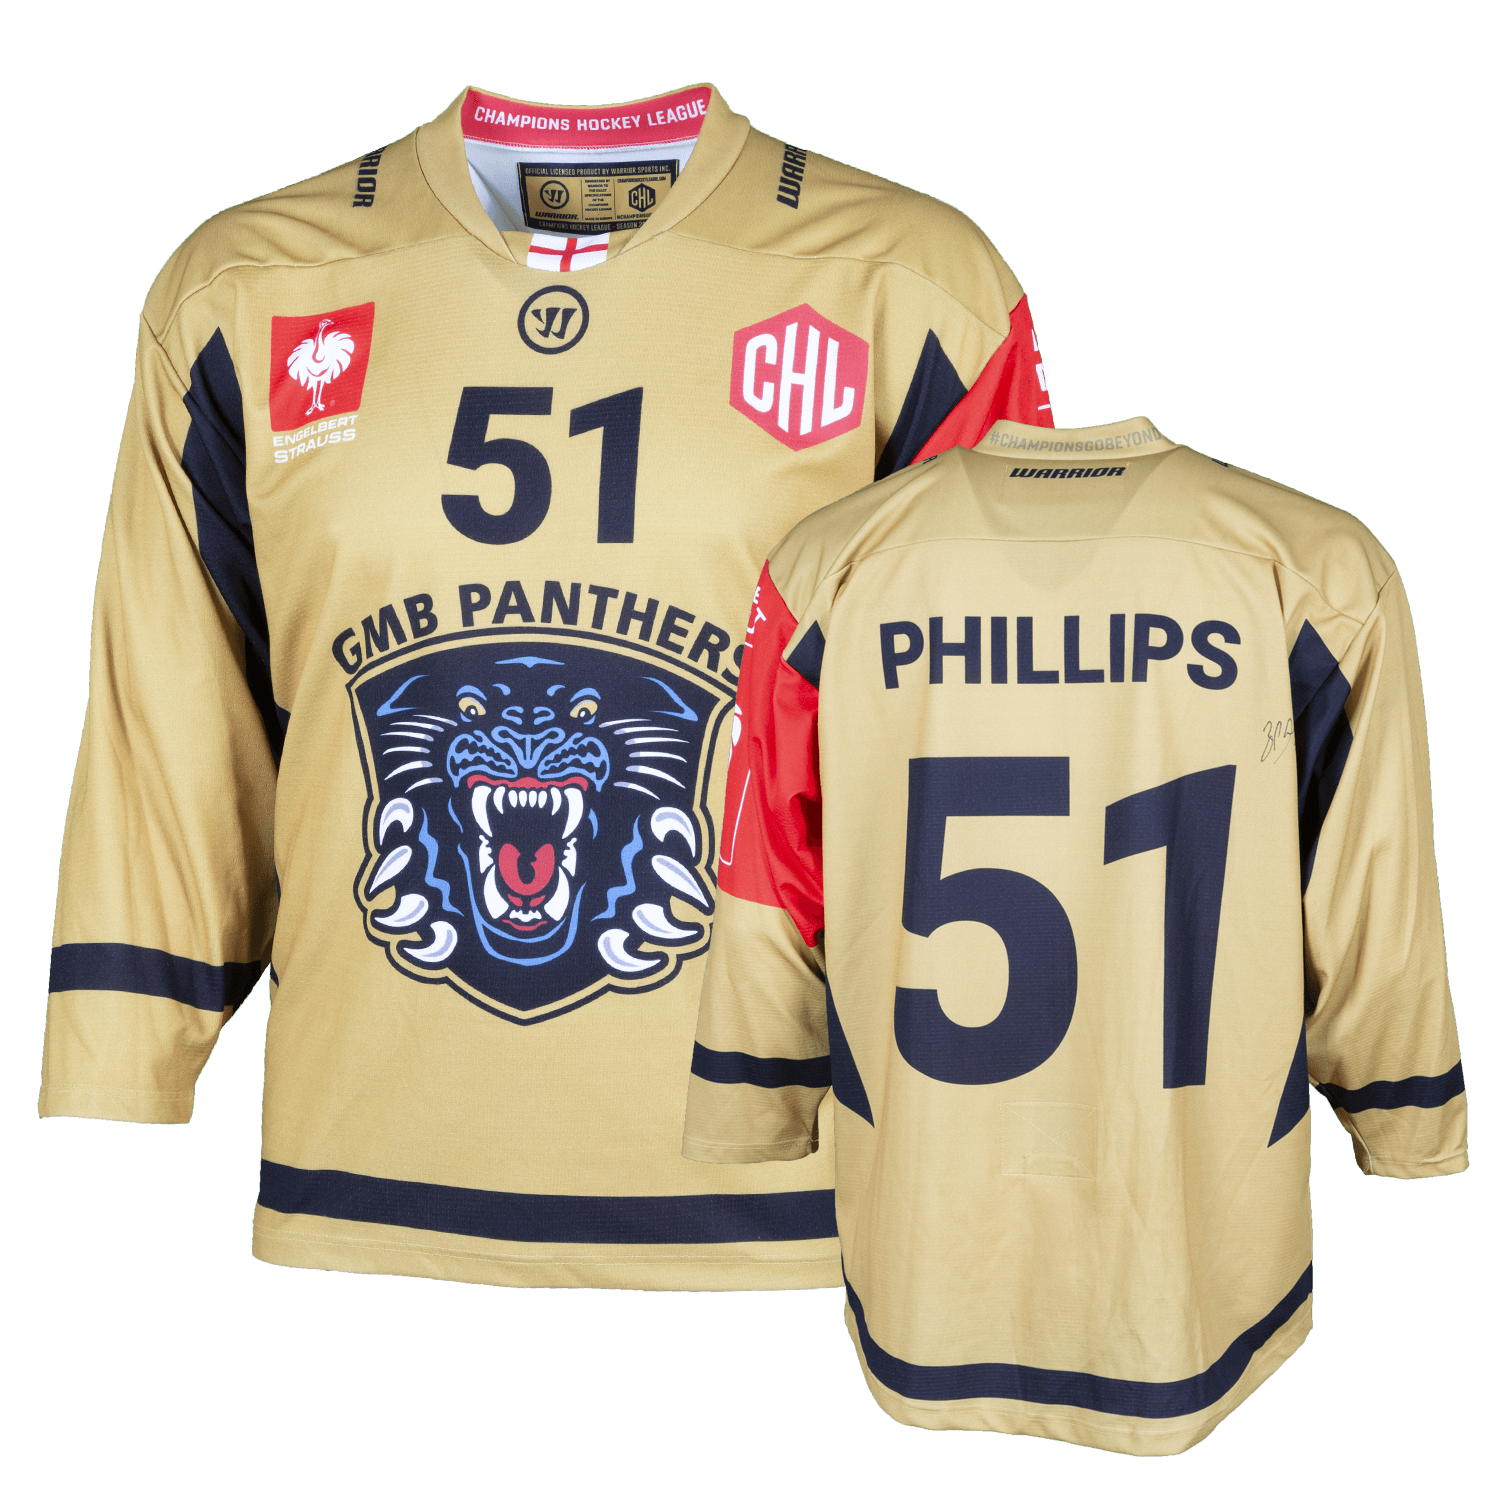 newest a0643 333a8 Nottingham Panthers - Champions Hockey League Shop powered ...